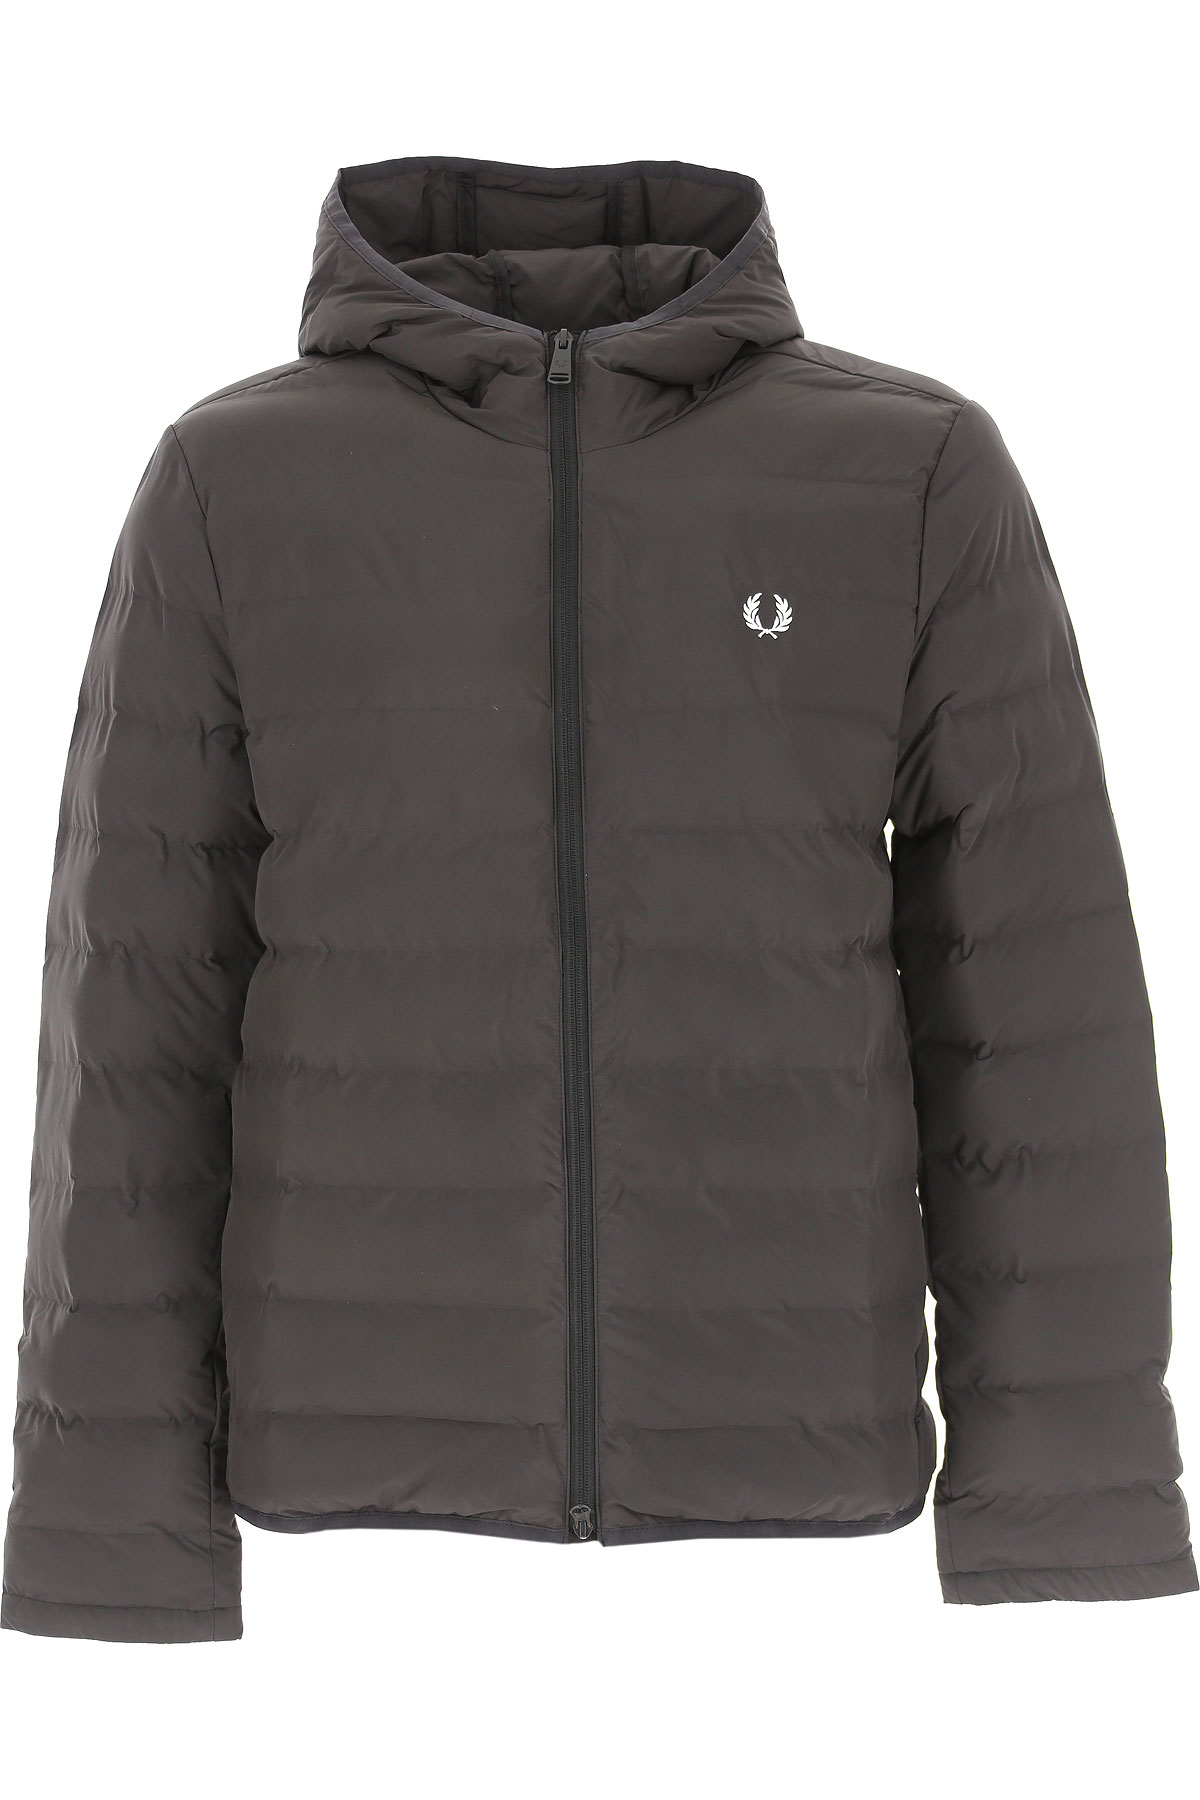 Fred Perry Jacket for Men On Sale, Black, polyester, 2019, L M S XL XS